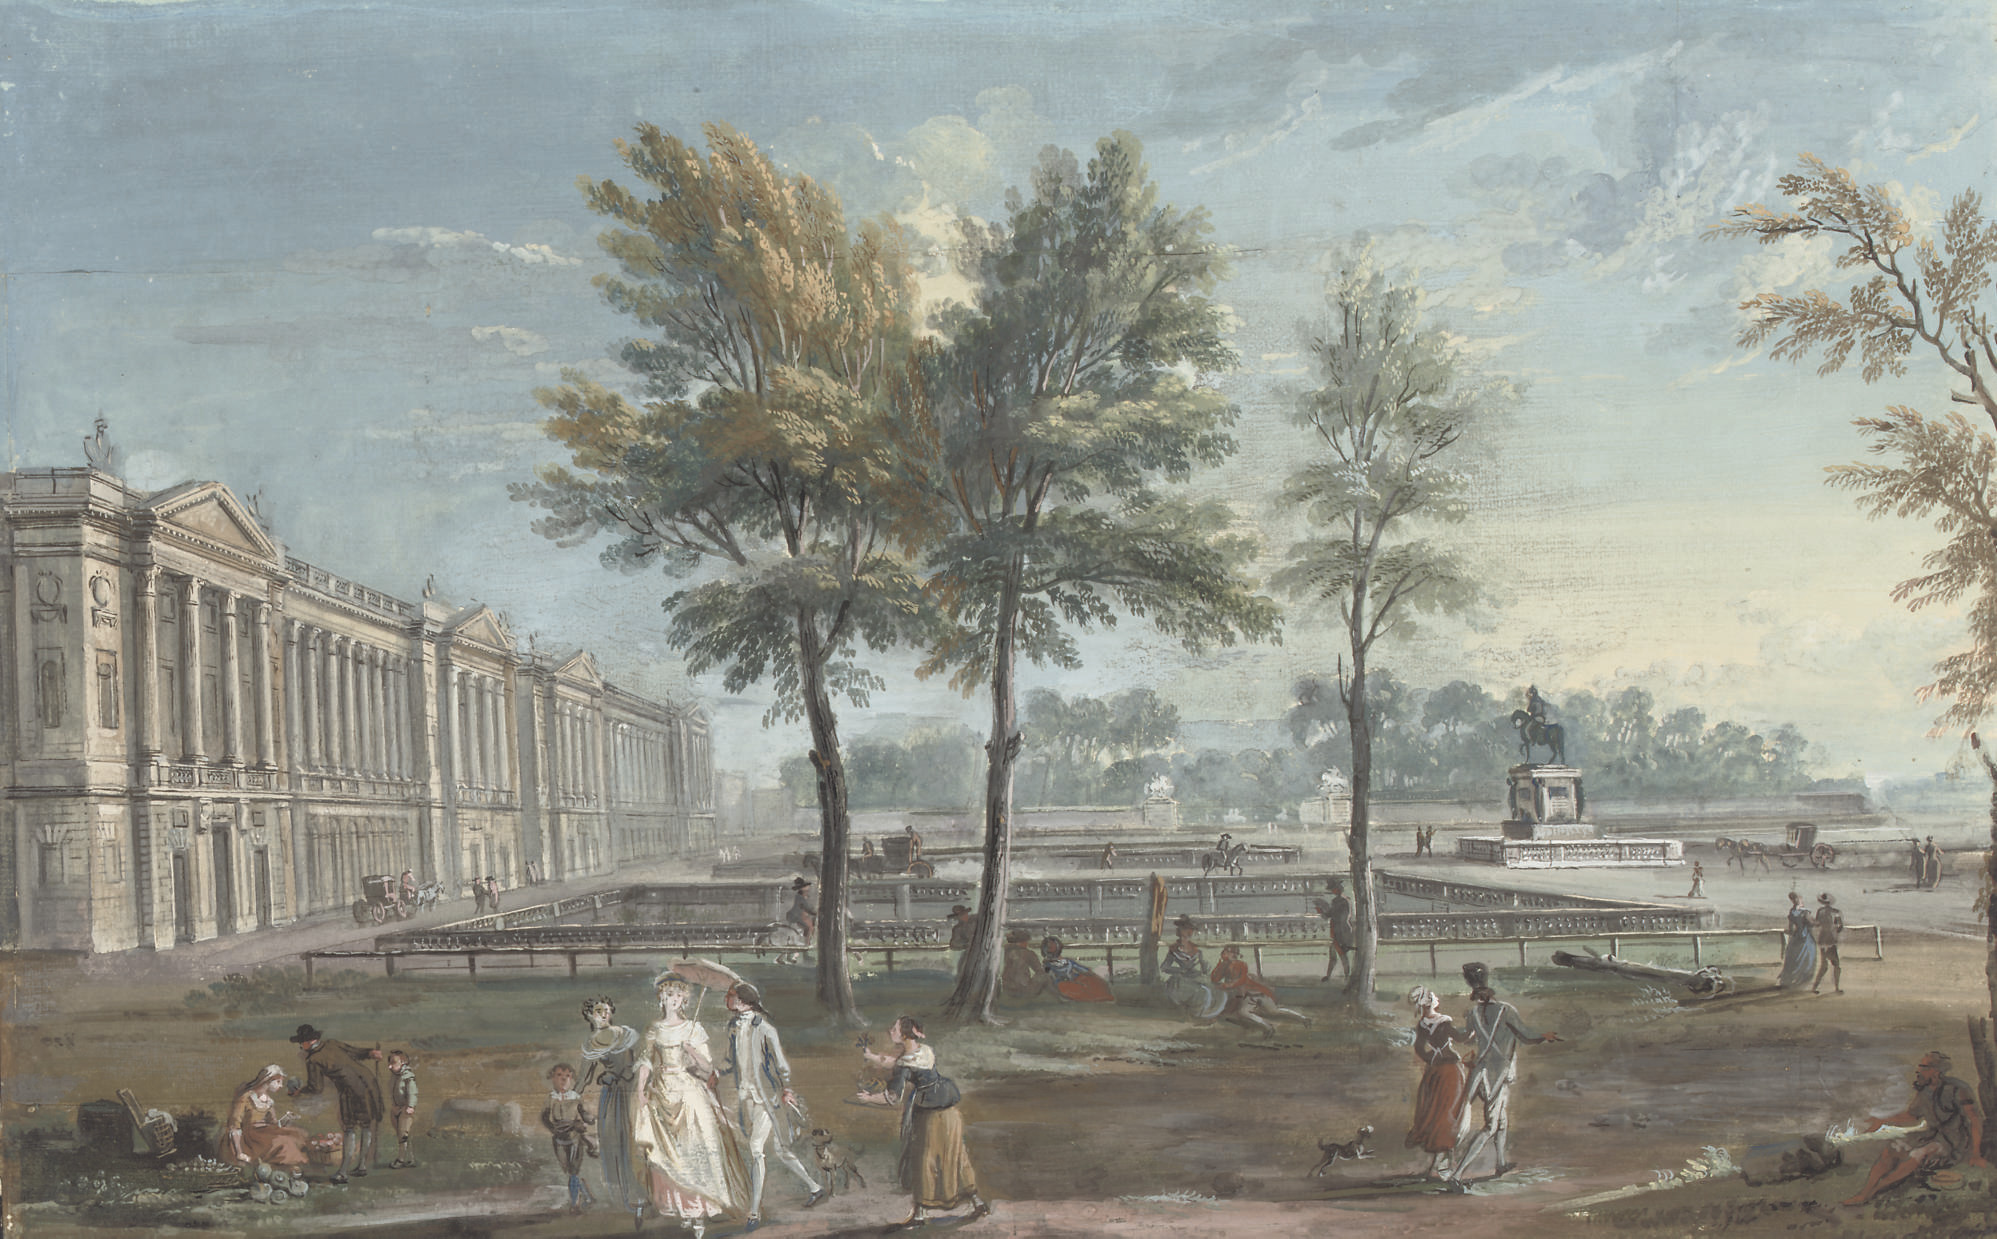 View of the Place Louis XV, later Place de la Concorde, seen from the Champs-Elysées, Paris